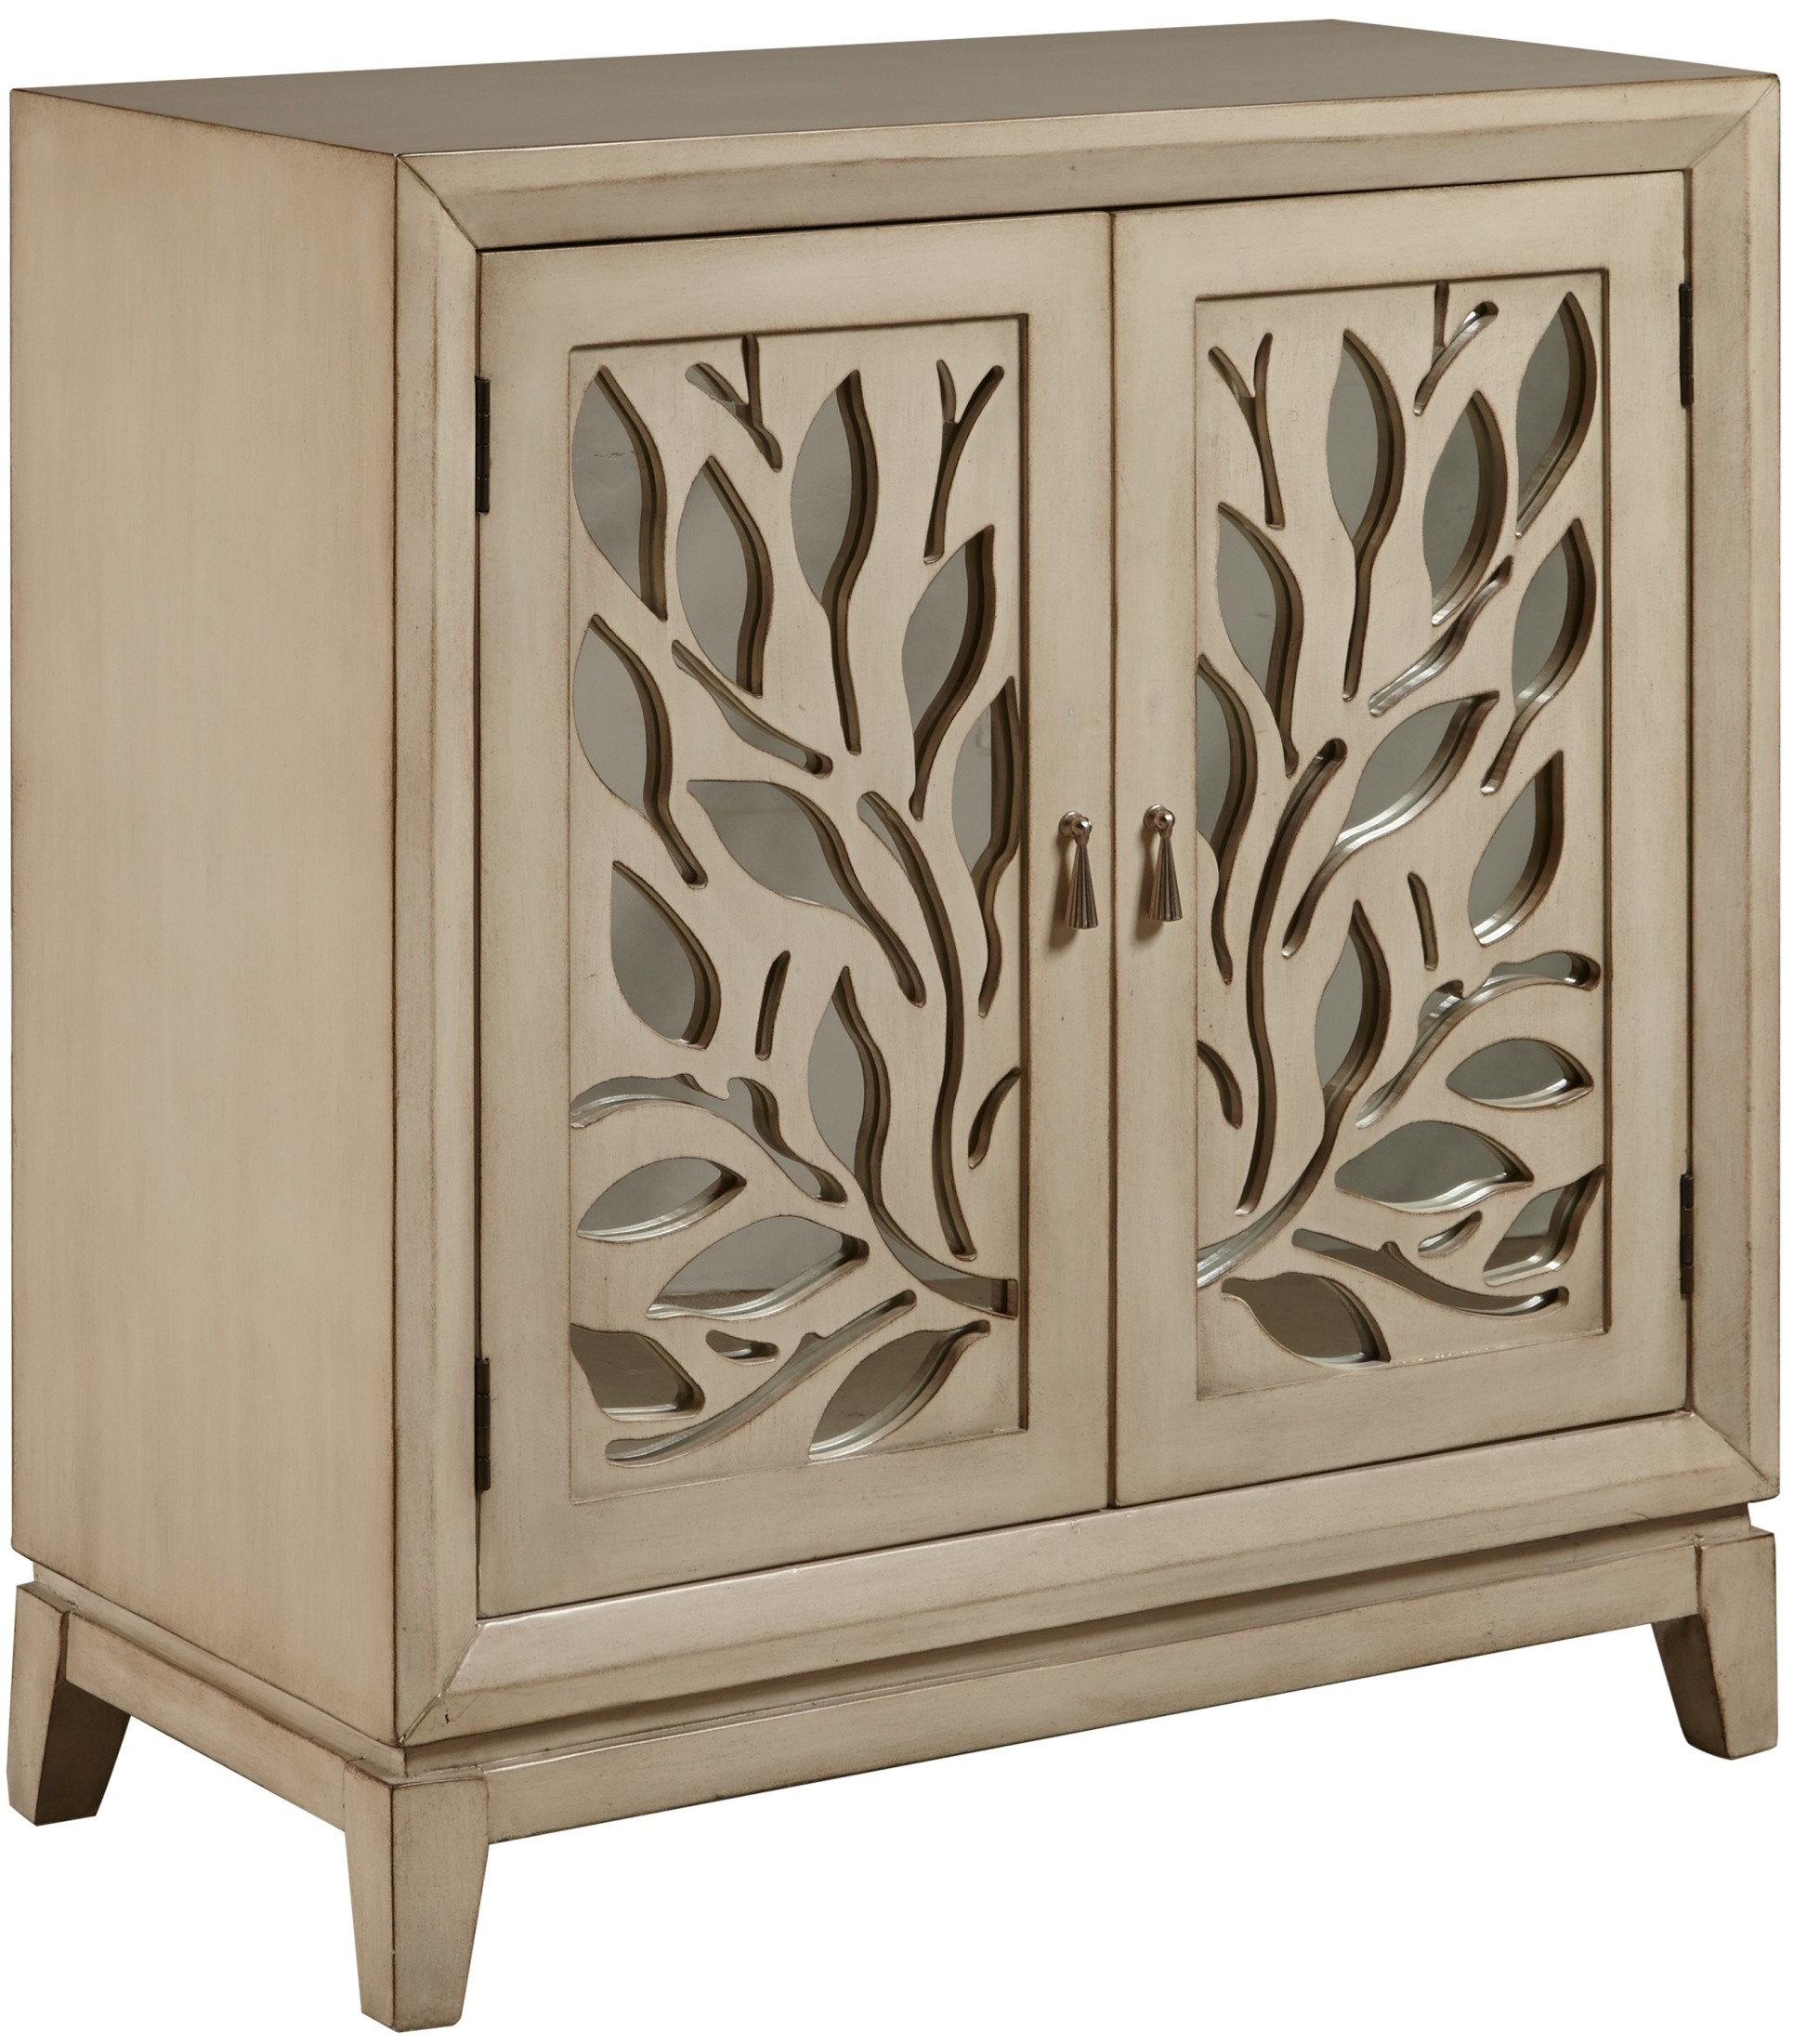 Distress Cabinets: Distressed White Door Cabinet From Pulaski (DS-A092004